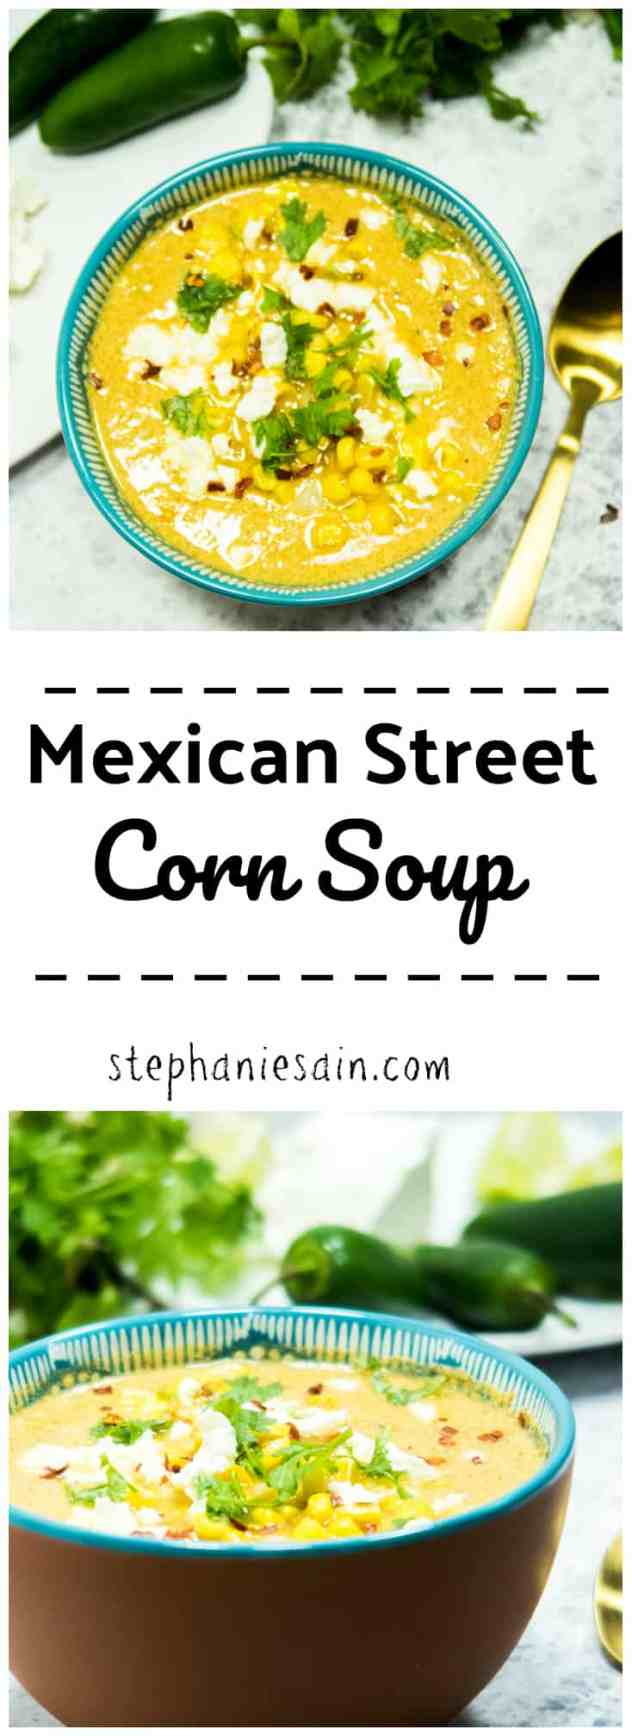 Mexican Street Corn Soup is a great way to enjoy the flavors of Mexican Street Corn in a warm cozy bowl of soup. Gluten free & Vegetarian.